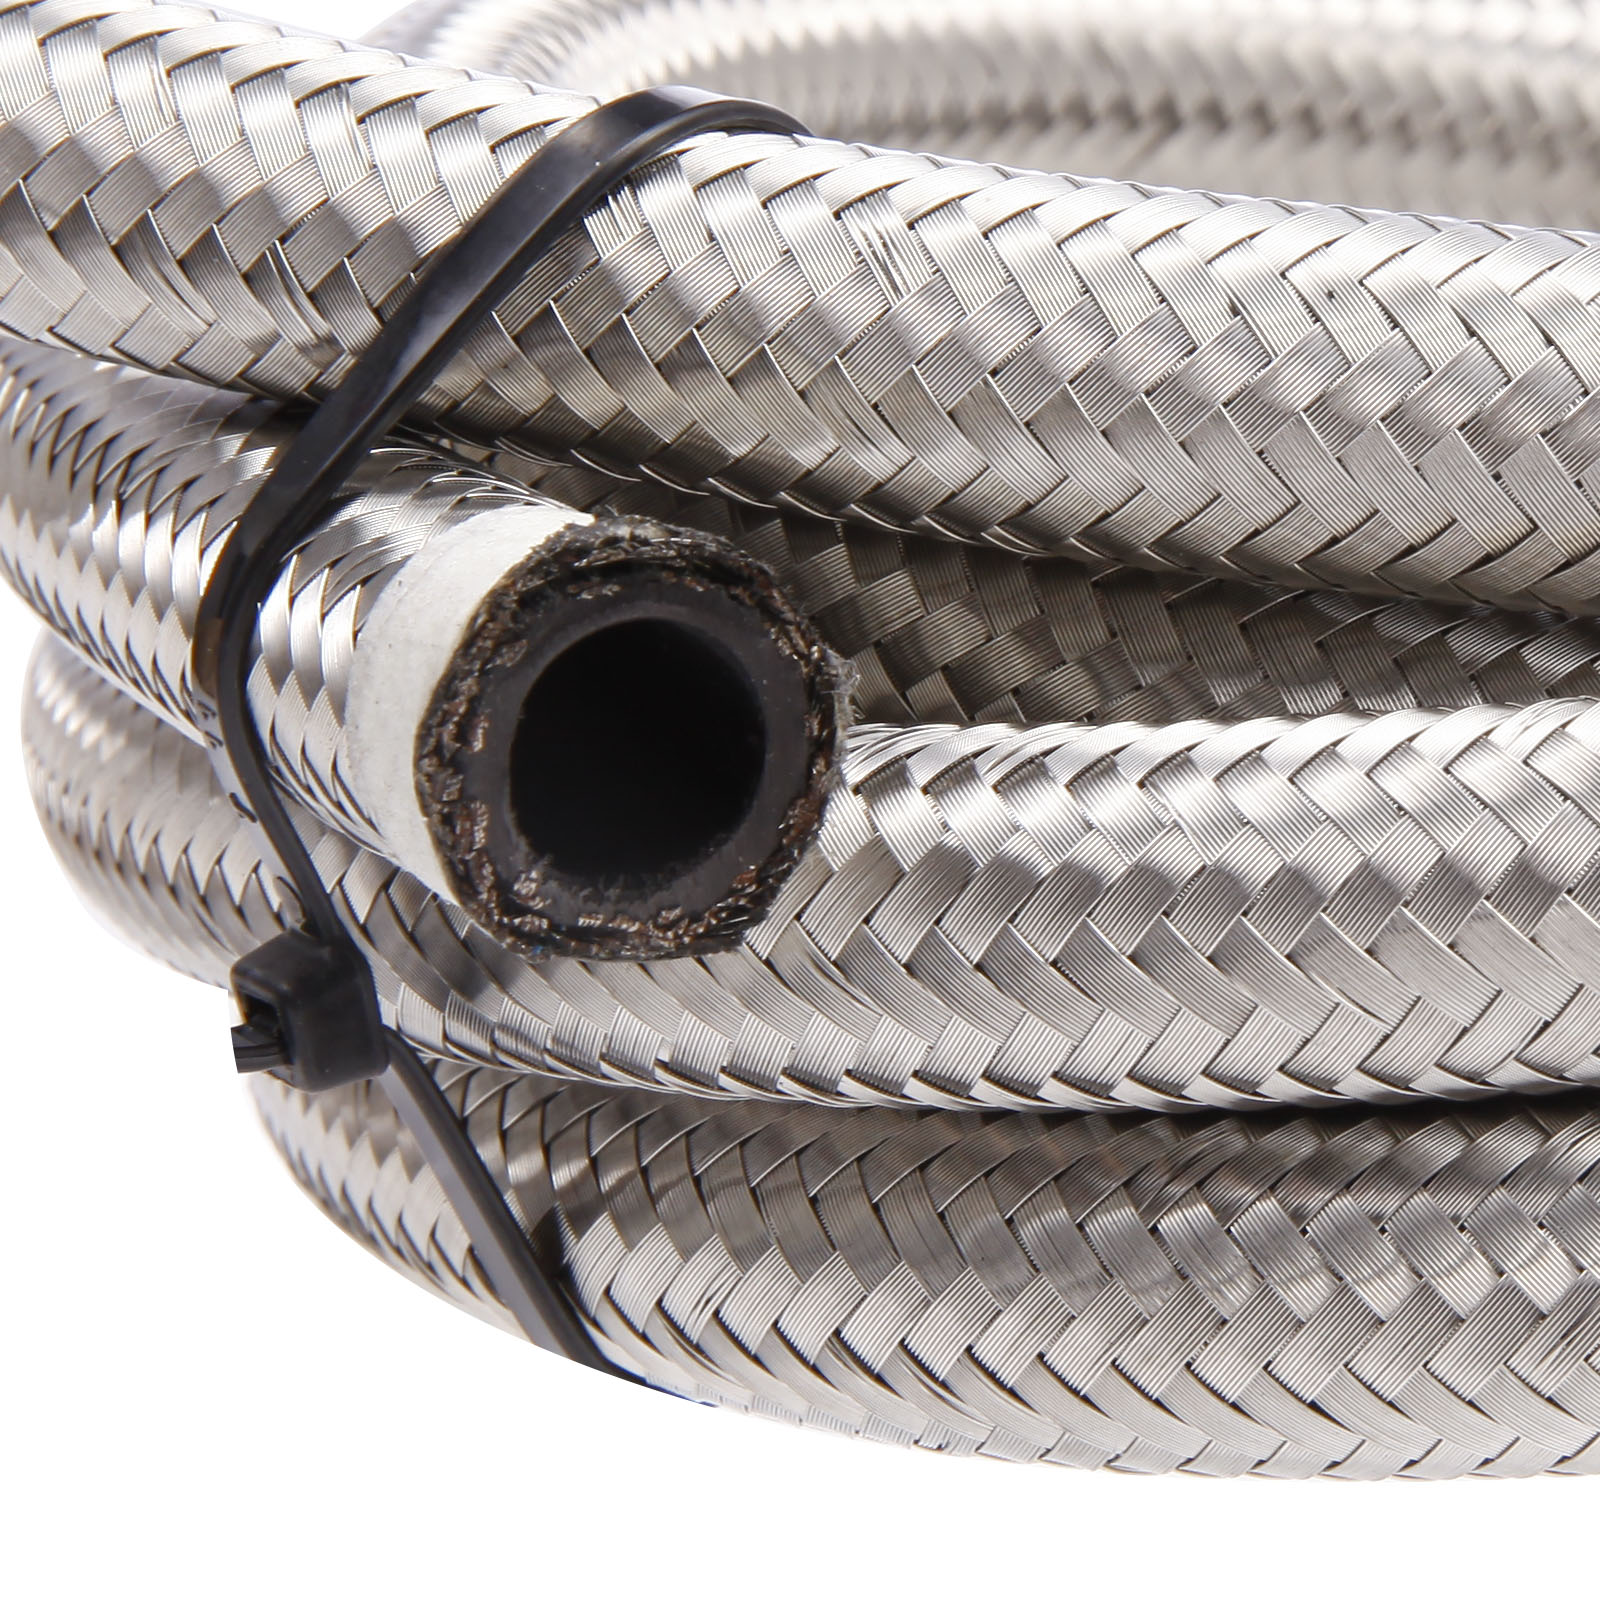 10 Stainless Steel Flexible Braided Fuel Line Hose Petrol Tube 2 Meter Remote Oil Cooler SurePromise AN